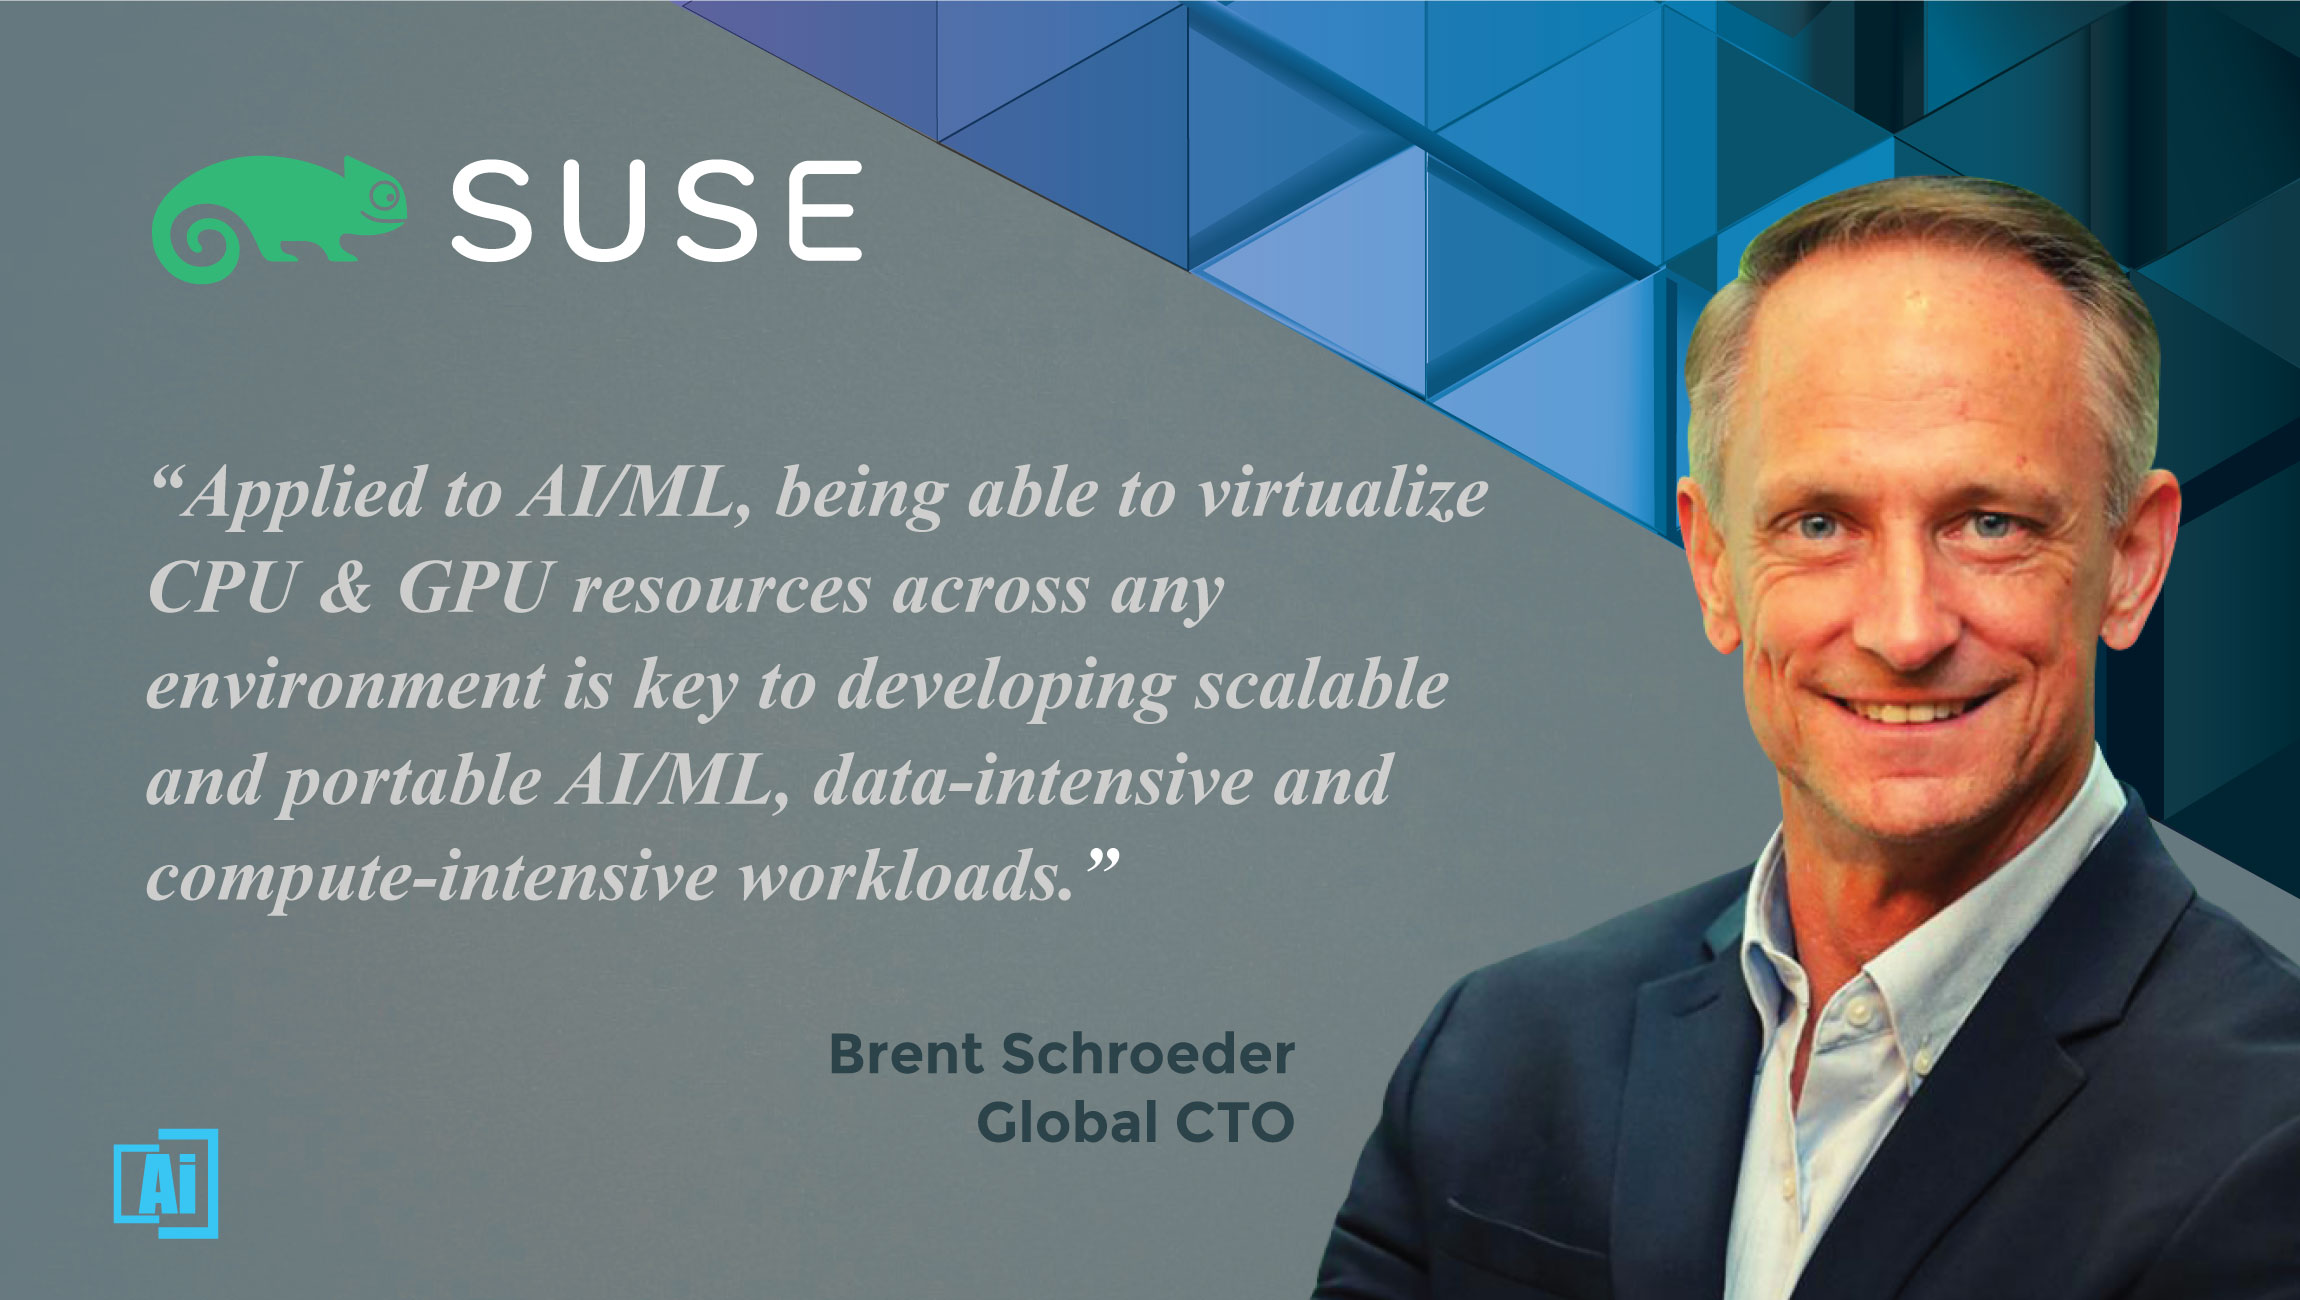 AiThority Interview with Brent Schroeder, SUSE's Global CTO - quotes